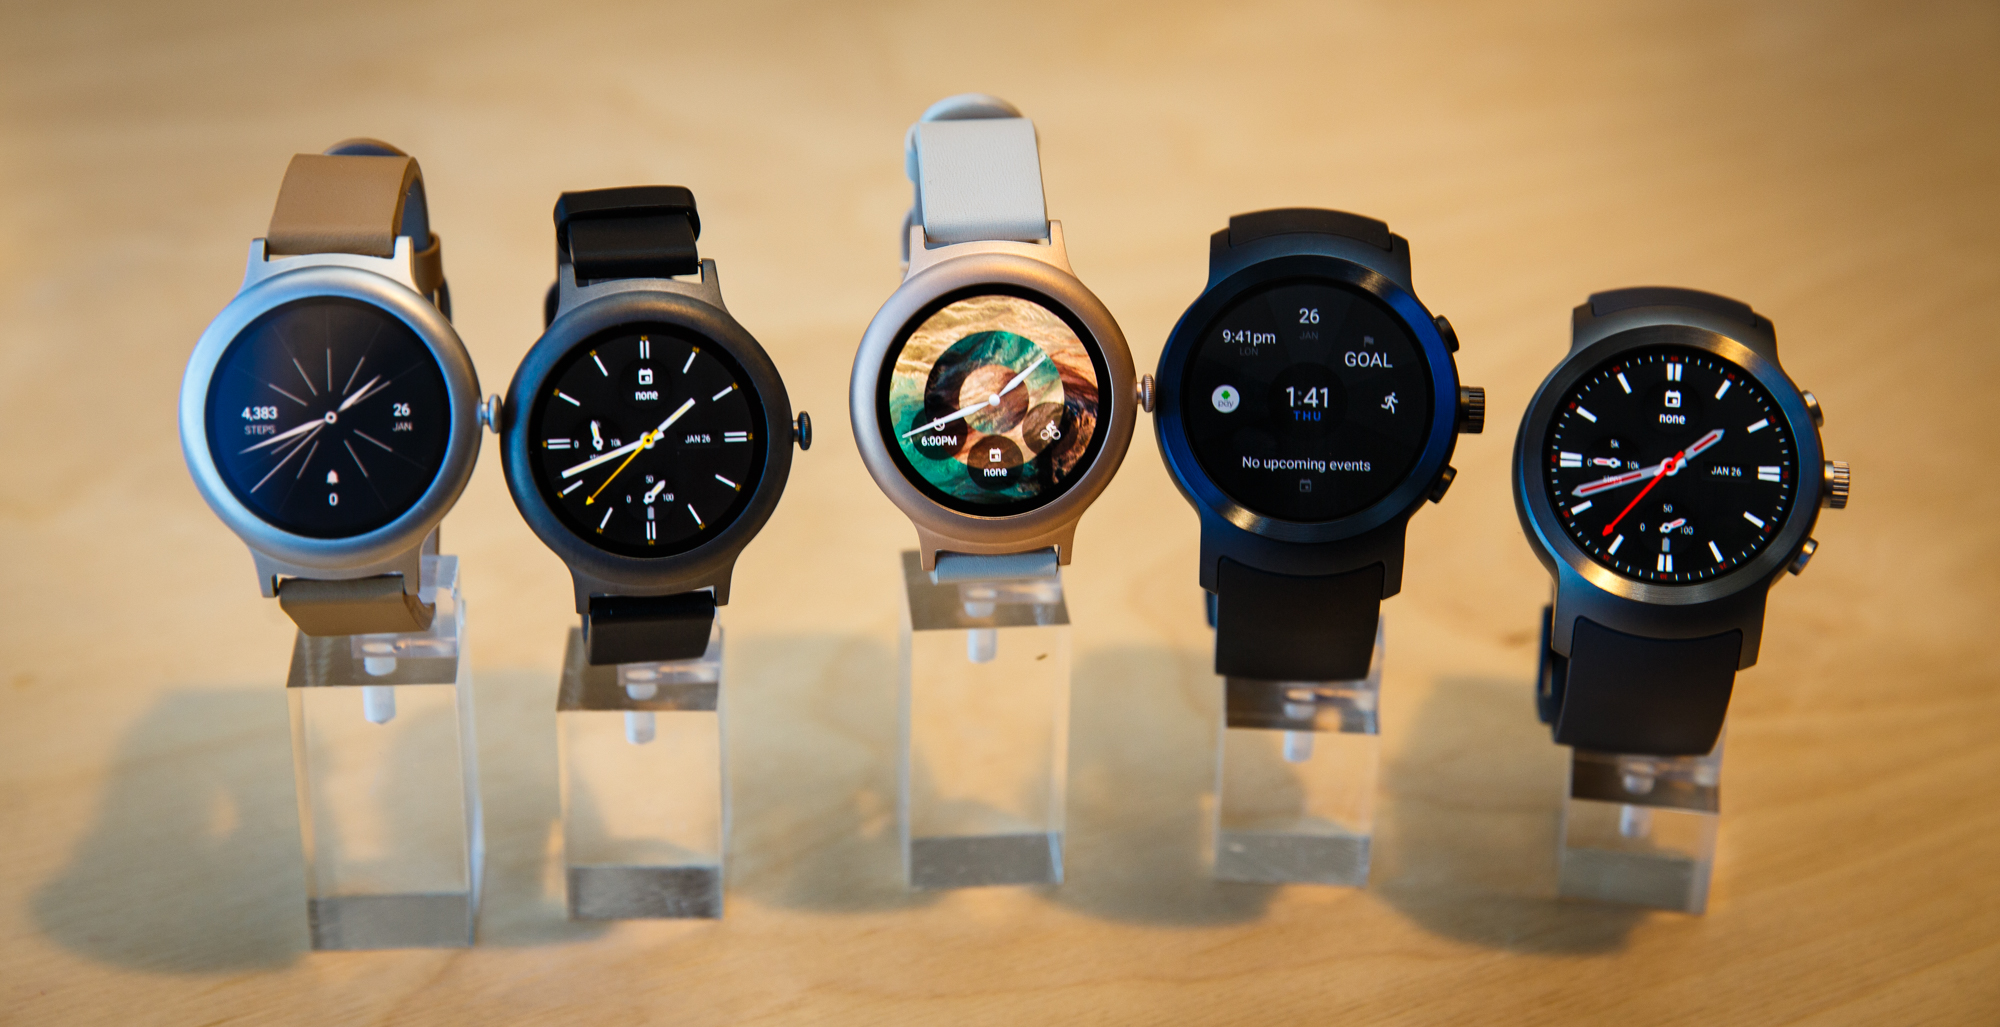 google-android-wear-2-0-watches-lg-6865-001.jpg